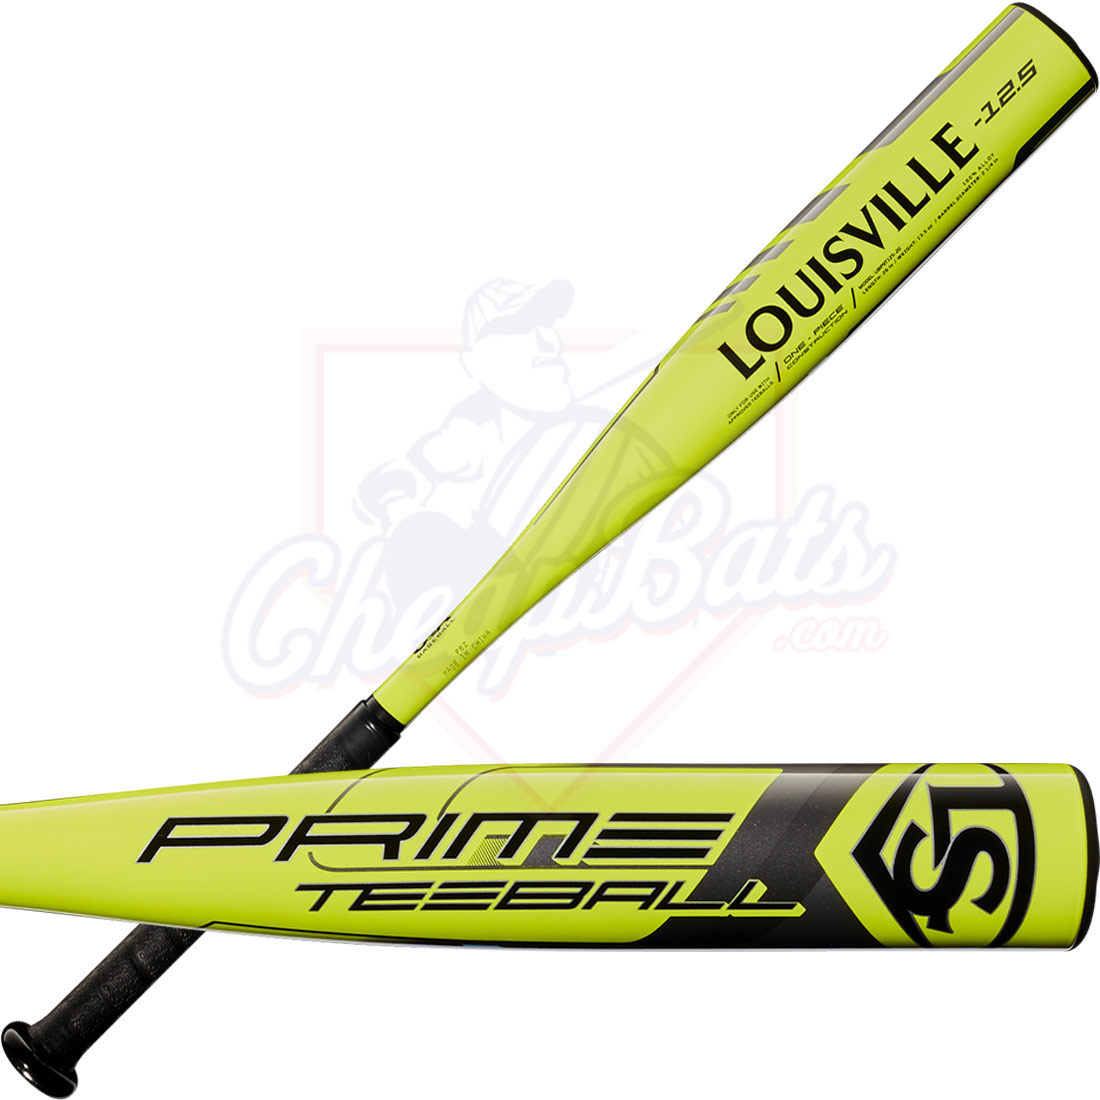 2020 Louisville Slugger Prime Youth USA Tee Ball Bat -12.5oz WTLUBP9T12520